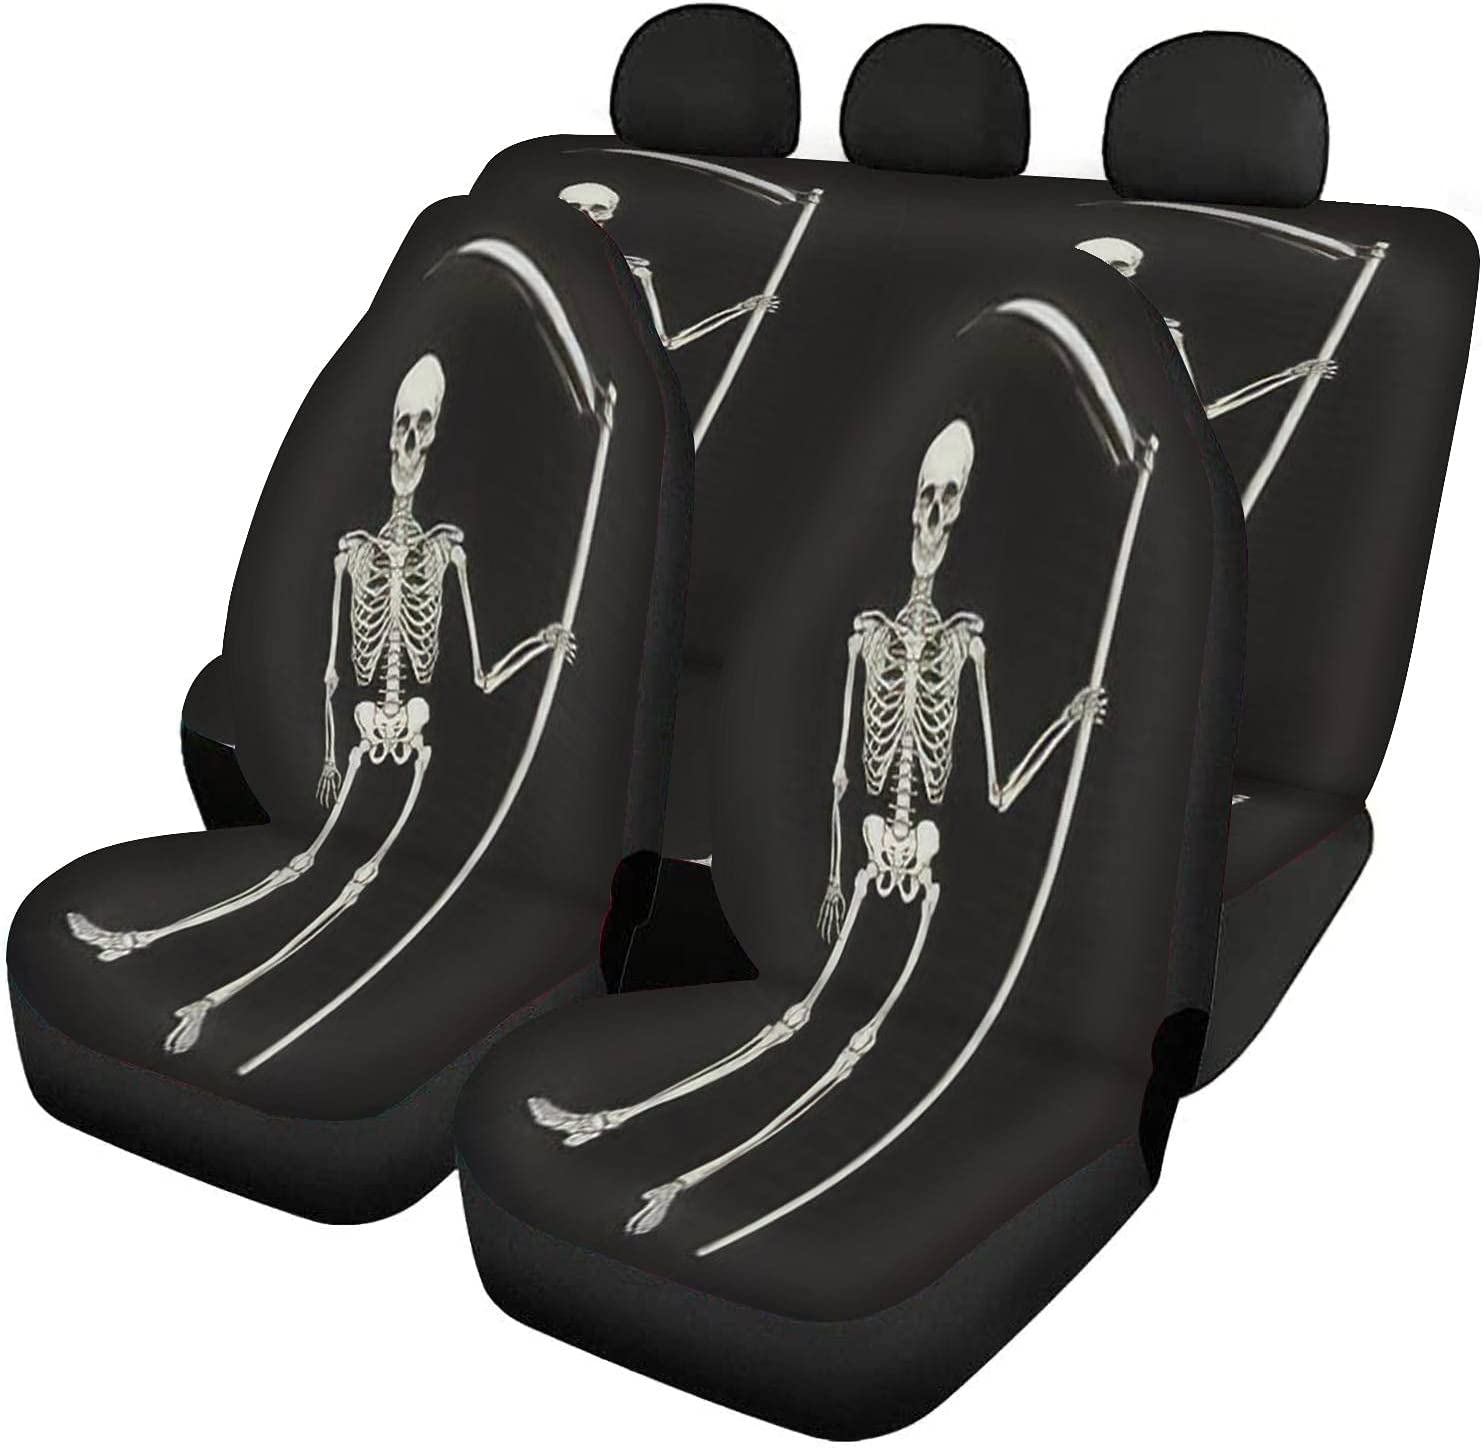 GDSJEGQM Car Seat Covers Full Set Grim Scythe with 40% OFF Cheap Sale Reaper The - Sales for sale